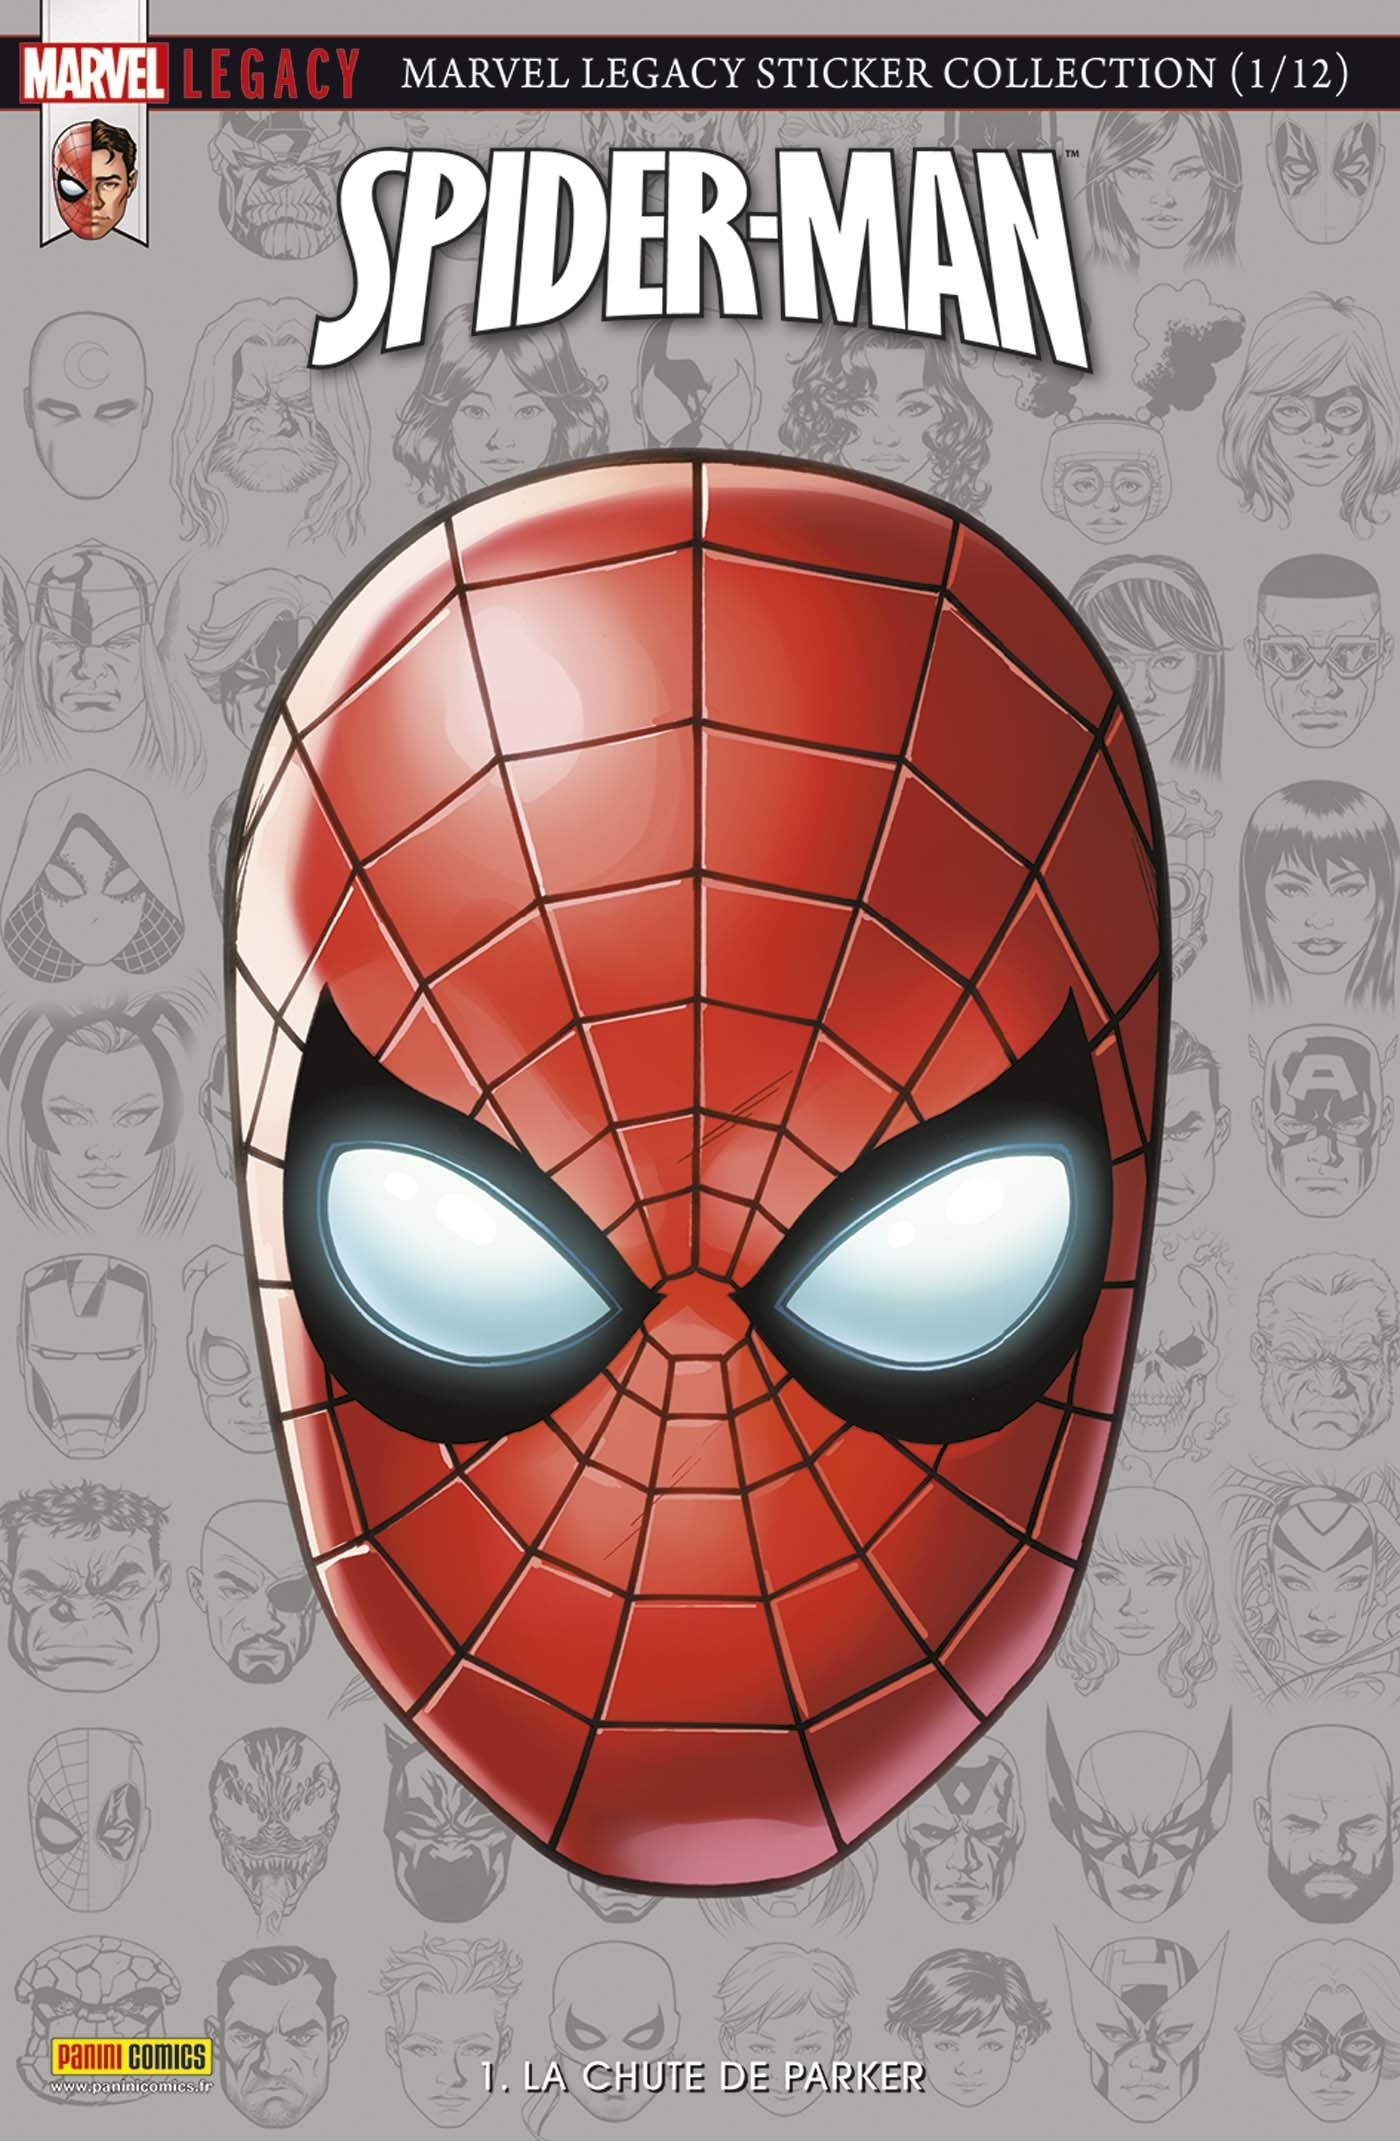 MARVEL LEGACY : SPIDER-MAN N 1